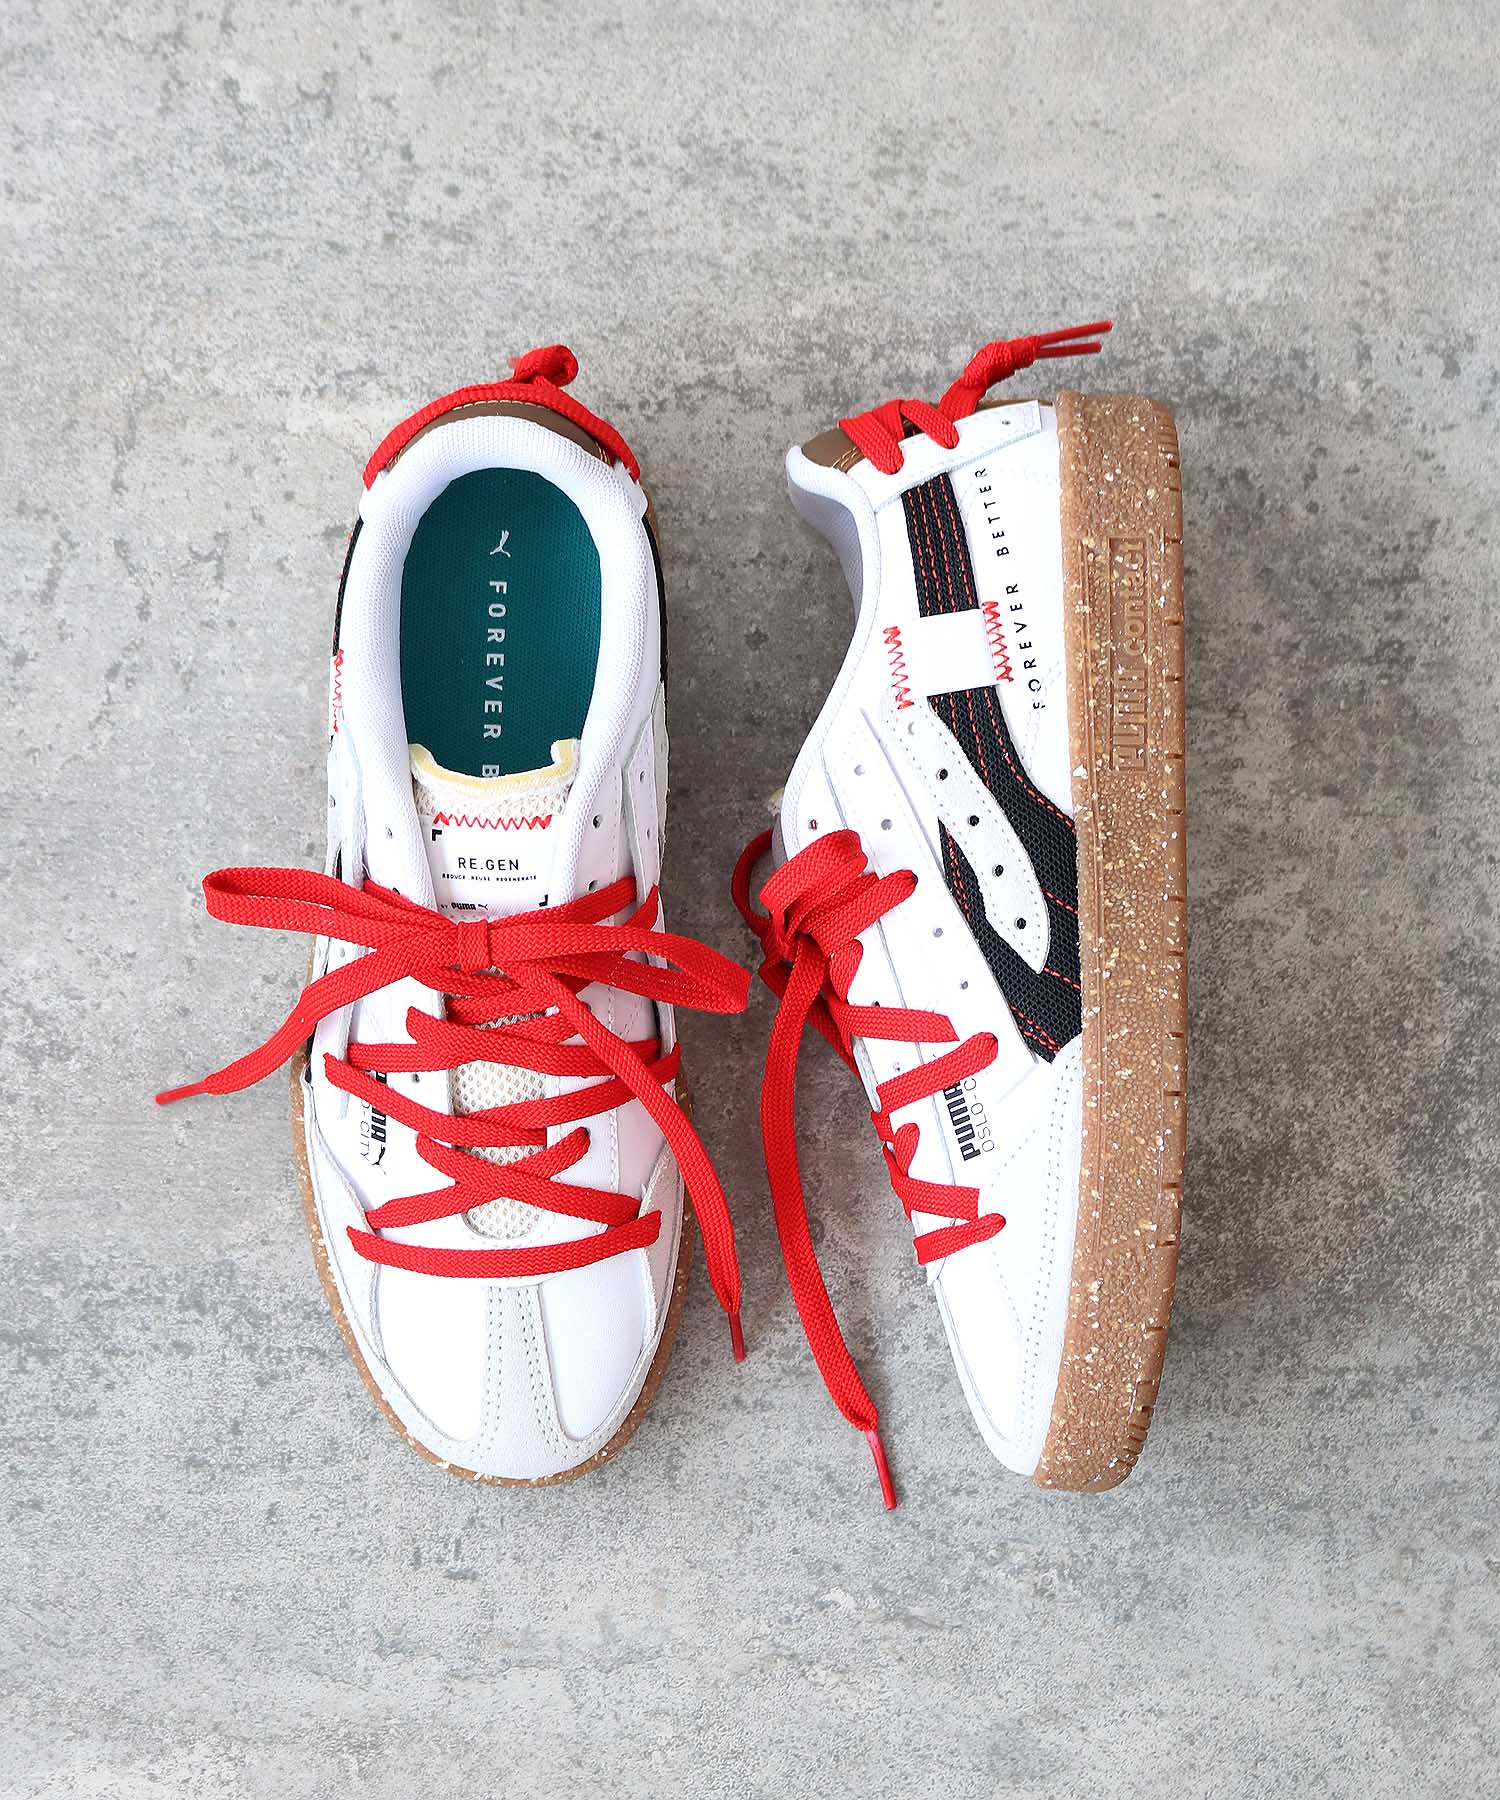 <PUMA>OSLO CITY RE GEN